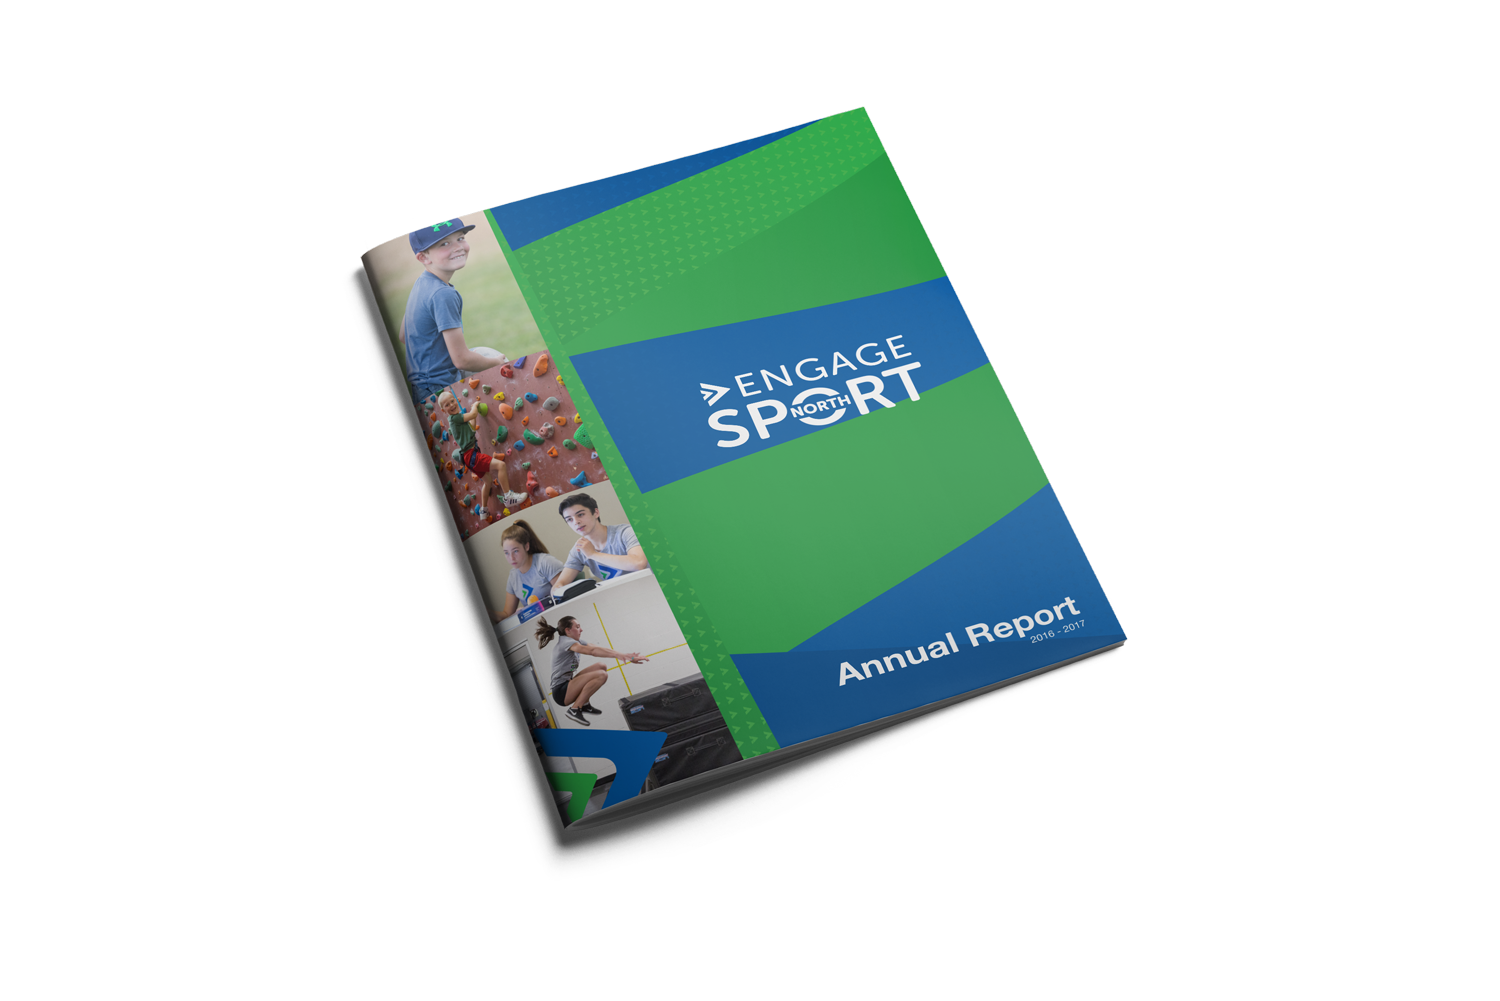 Engage-Sport-North-Annual-Report-Design-inside-1.png